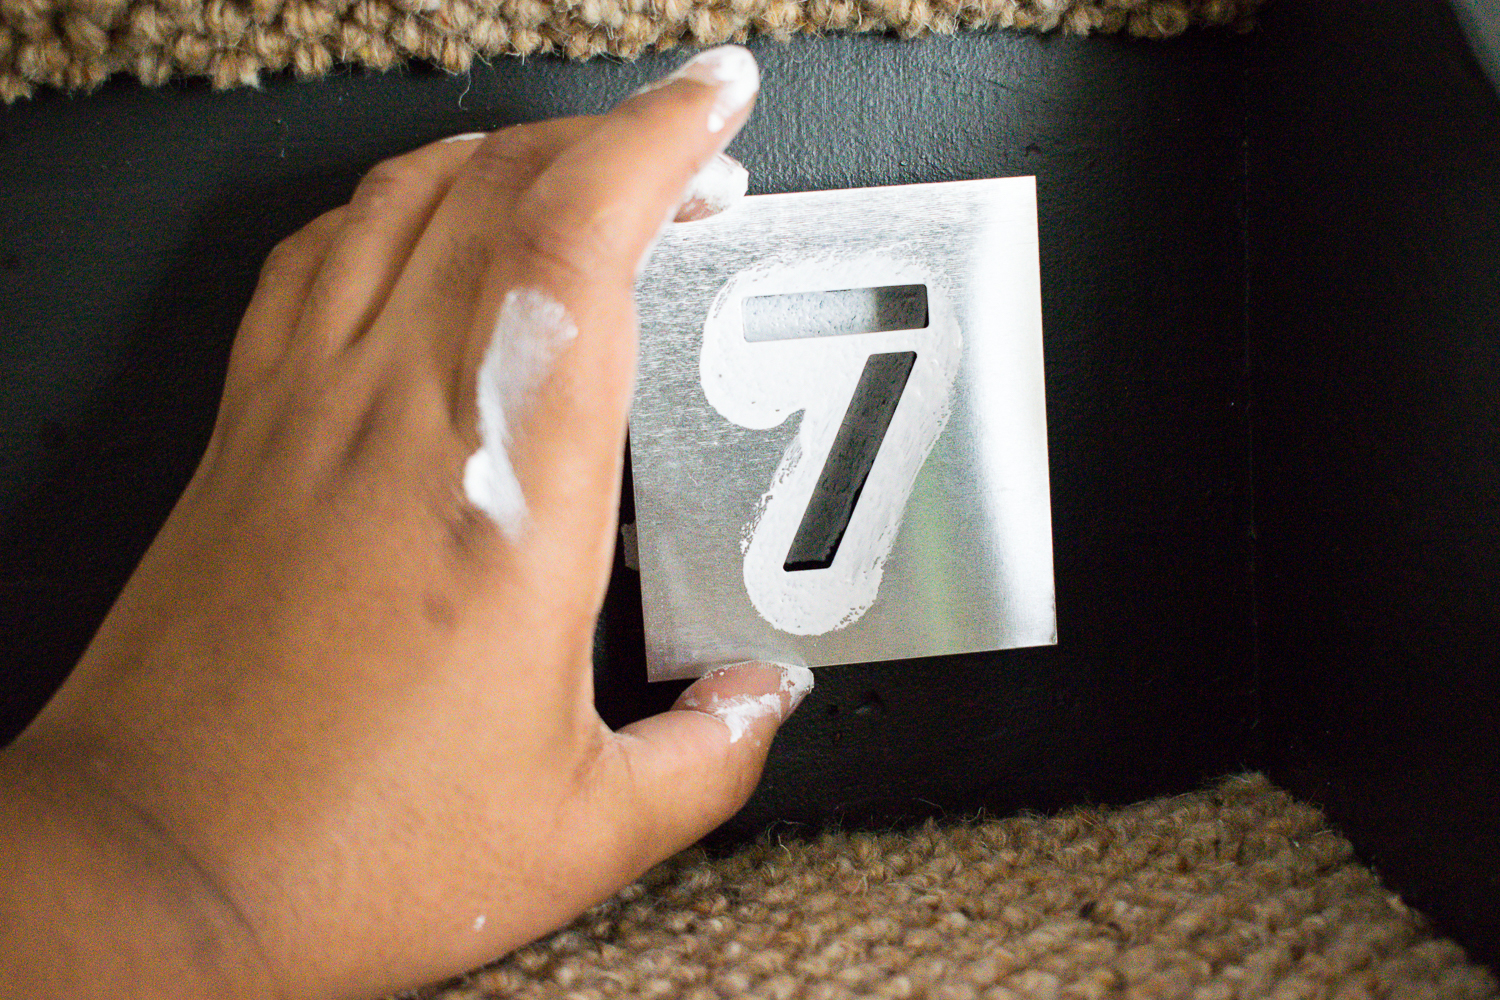 Image of me holding number 7 stencil on stairs